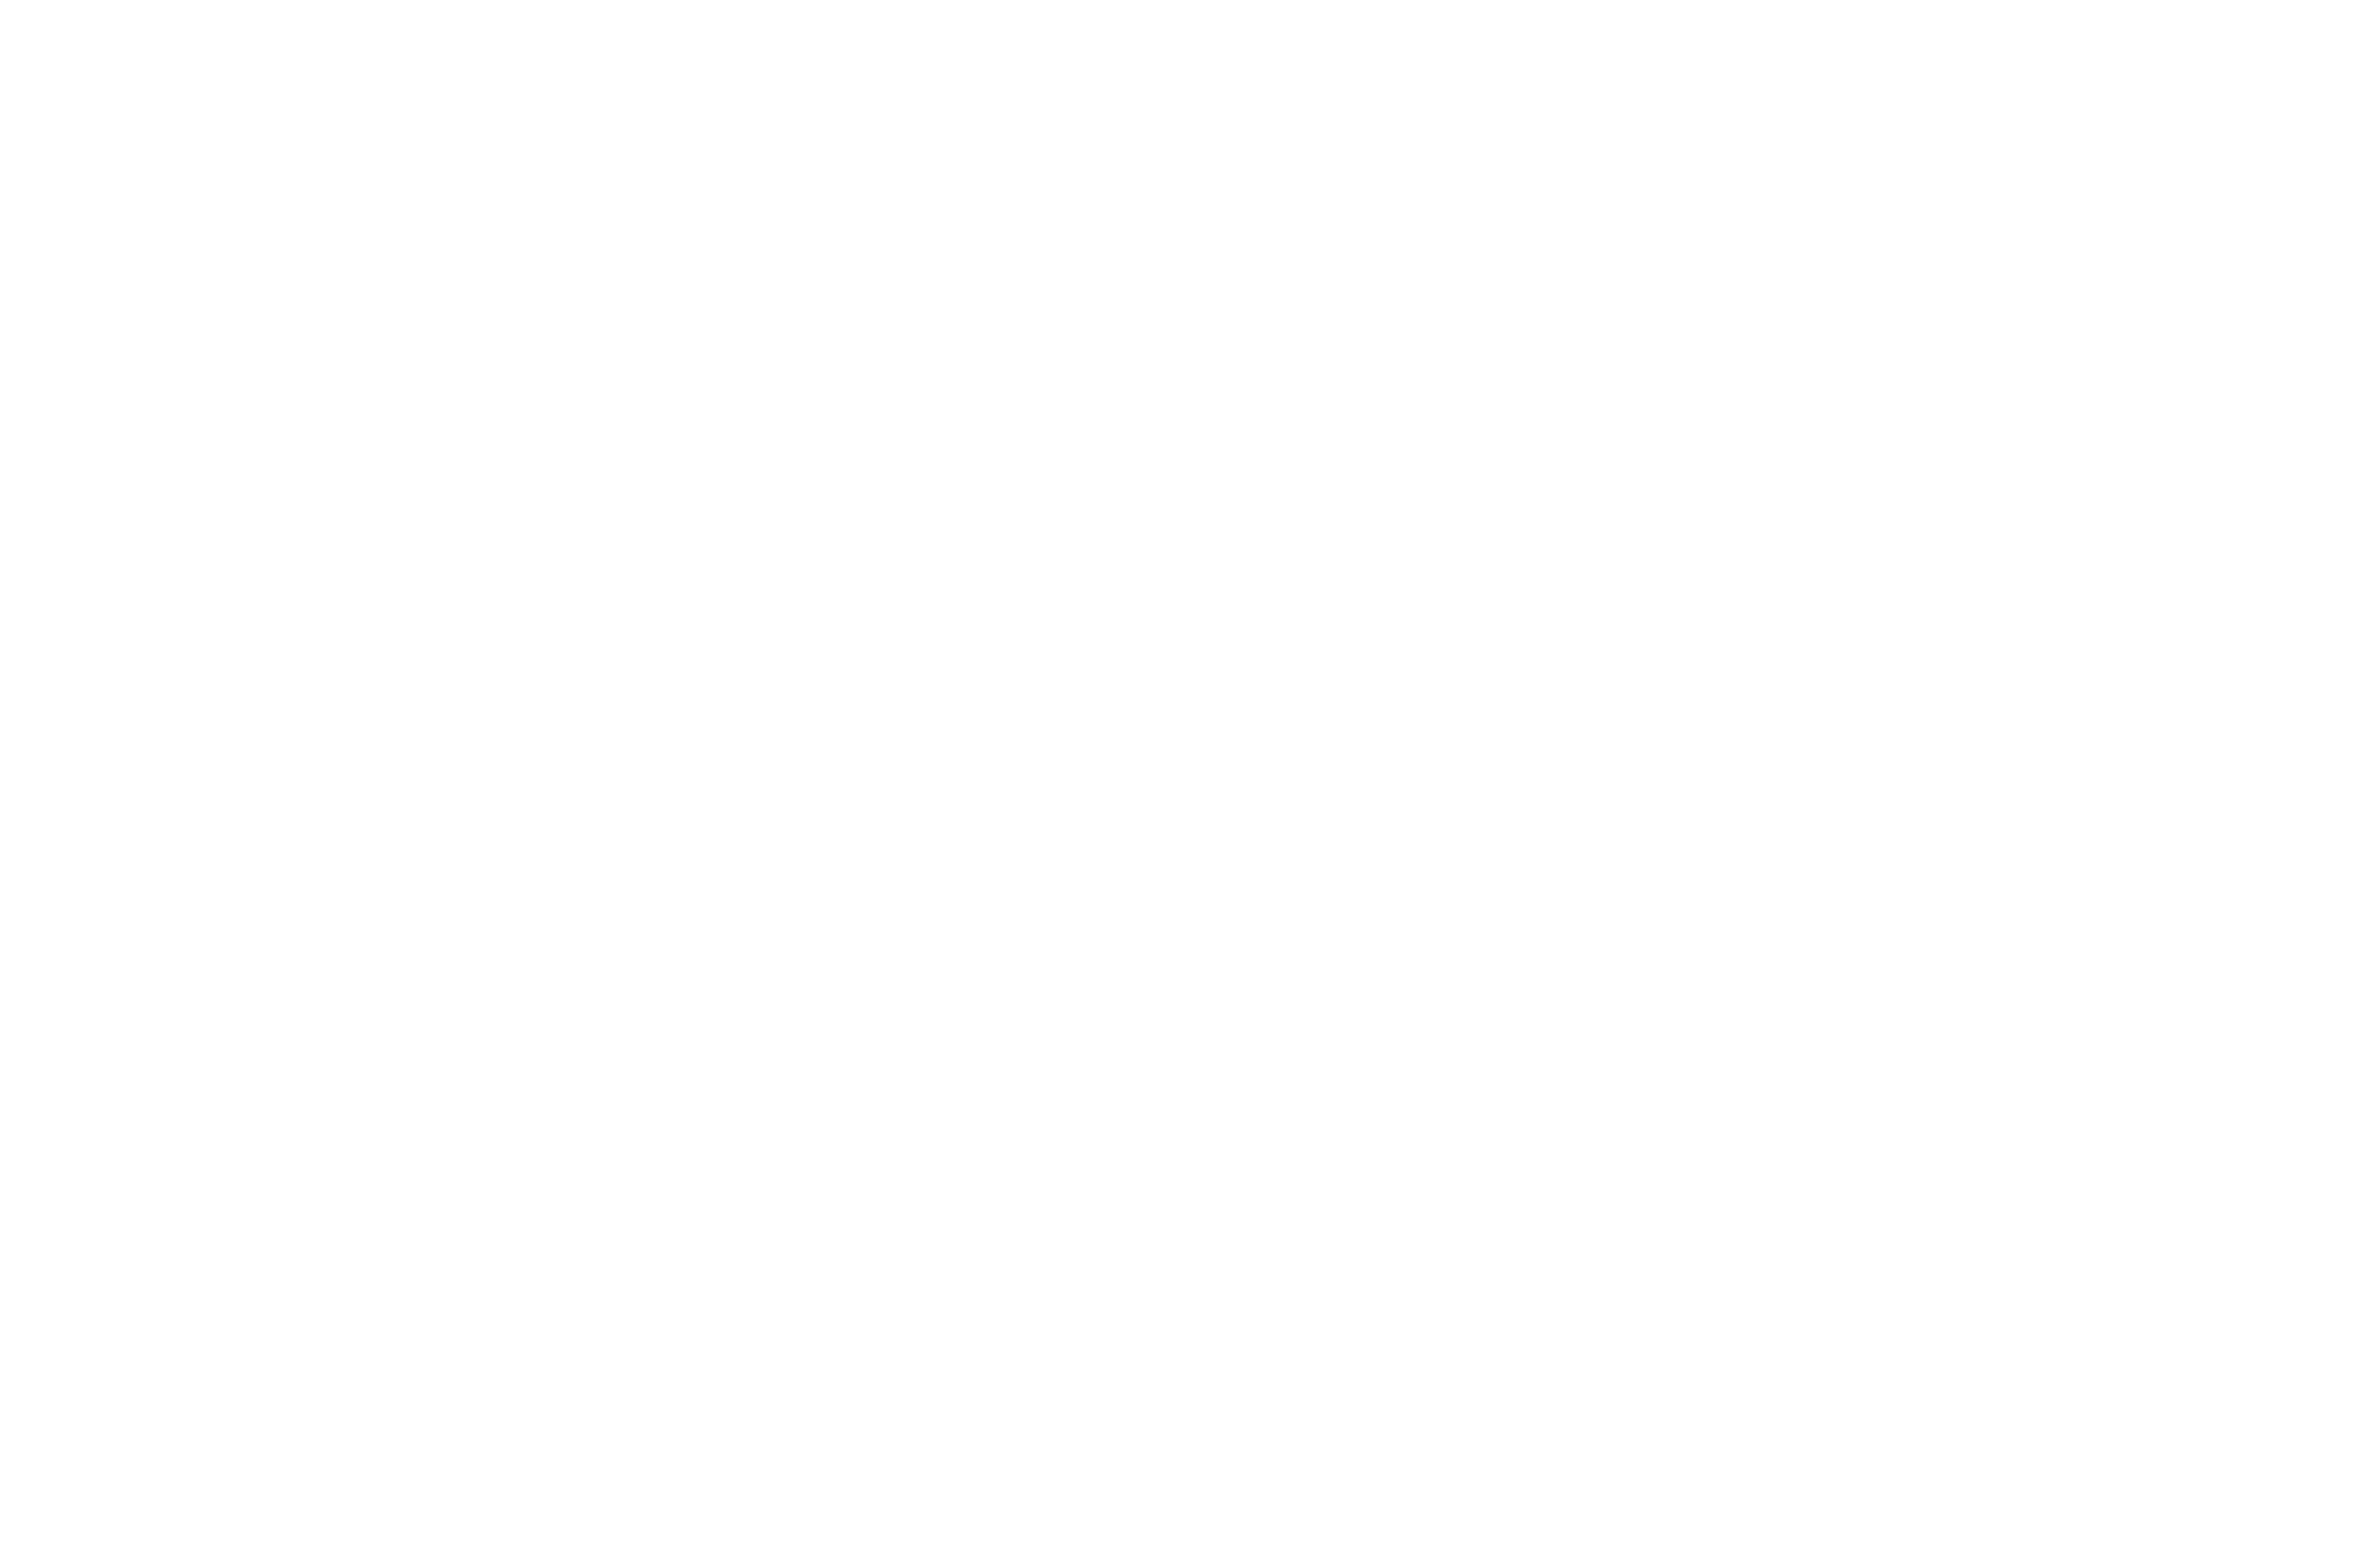 OFFICIALSELECTION-NewJerseyHorrorConandFilmFestival-SPRING2019.png